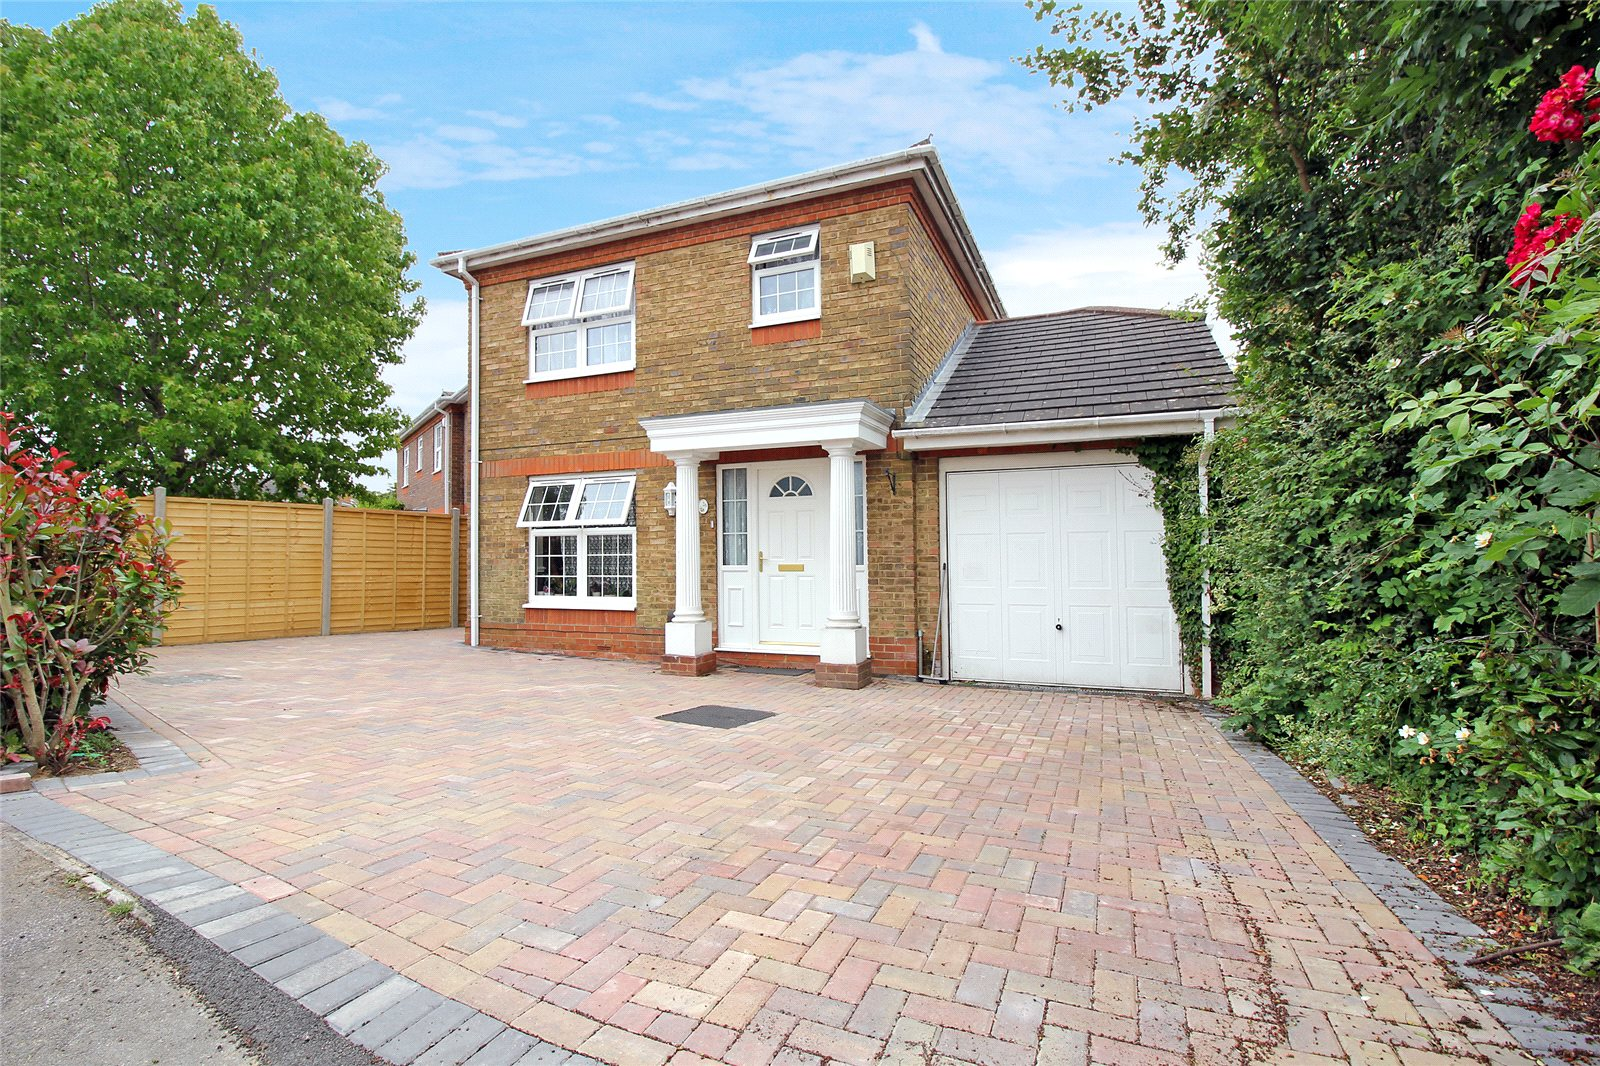 Pasture Close, Lower Earley, Reading RG6